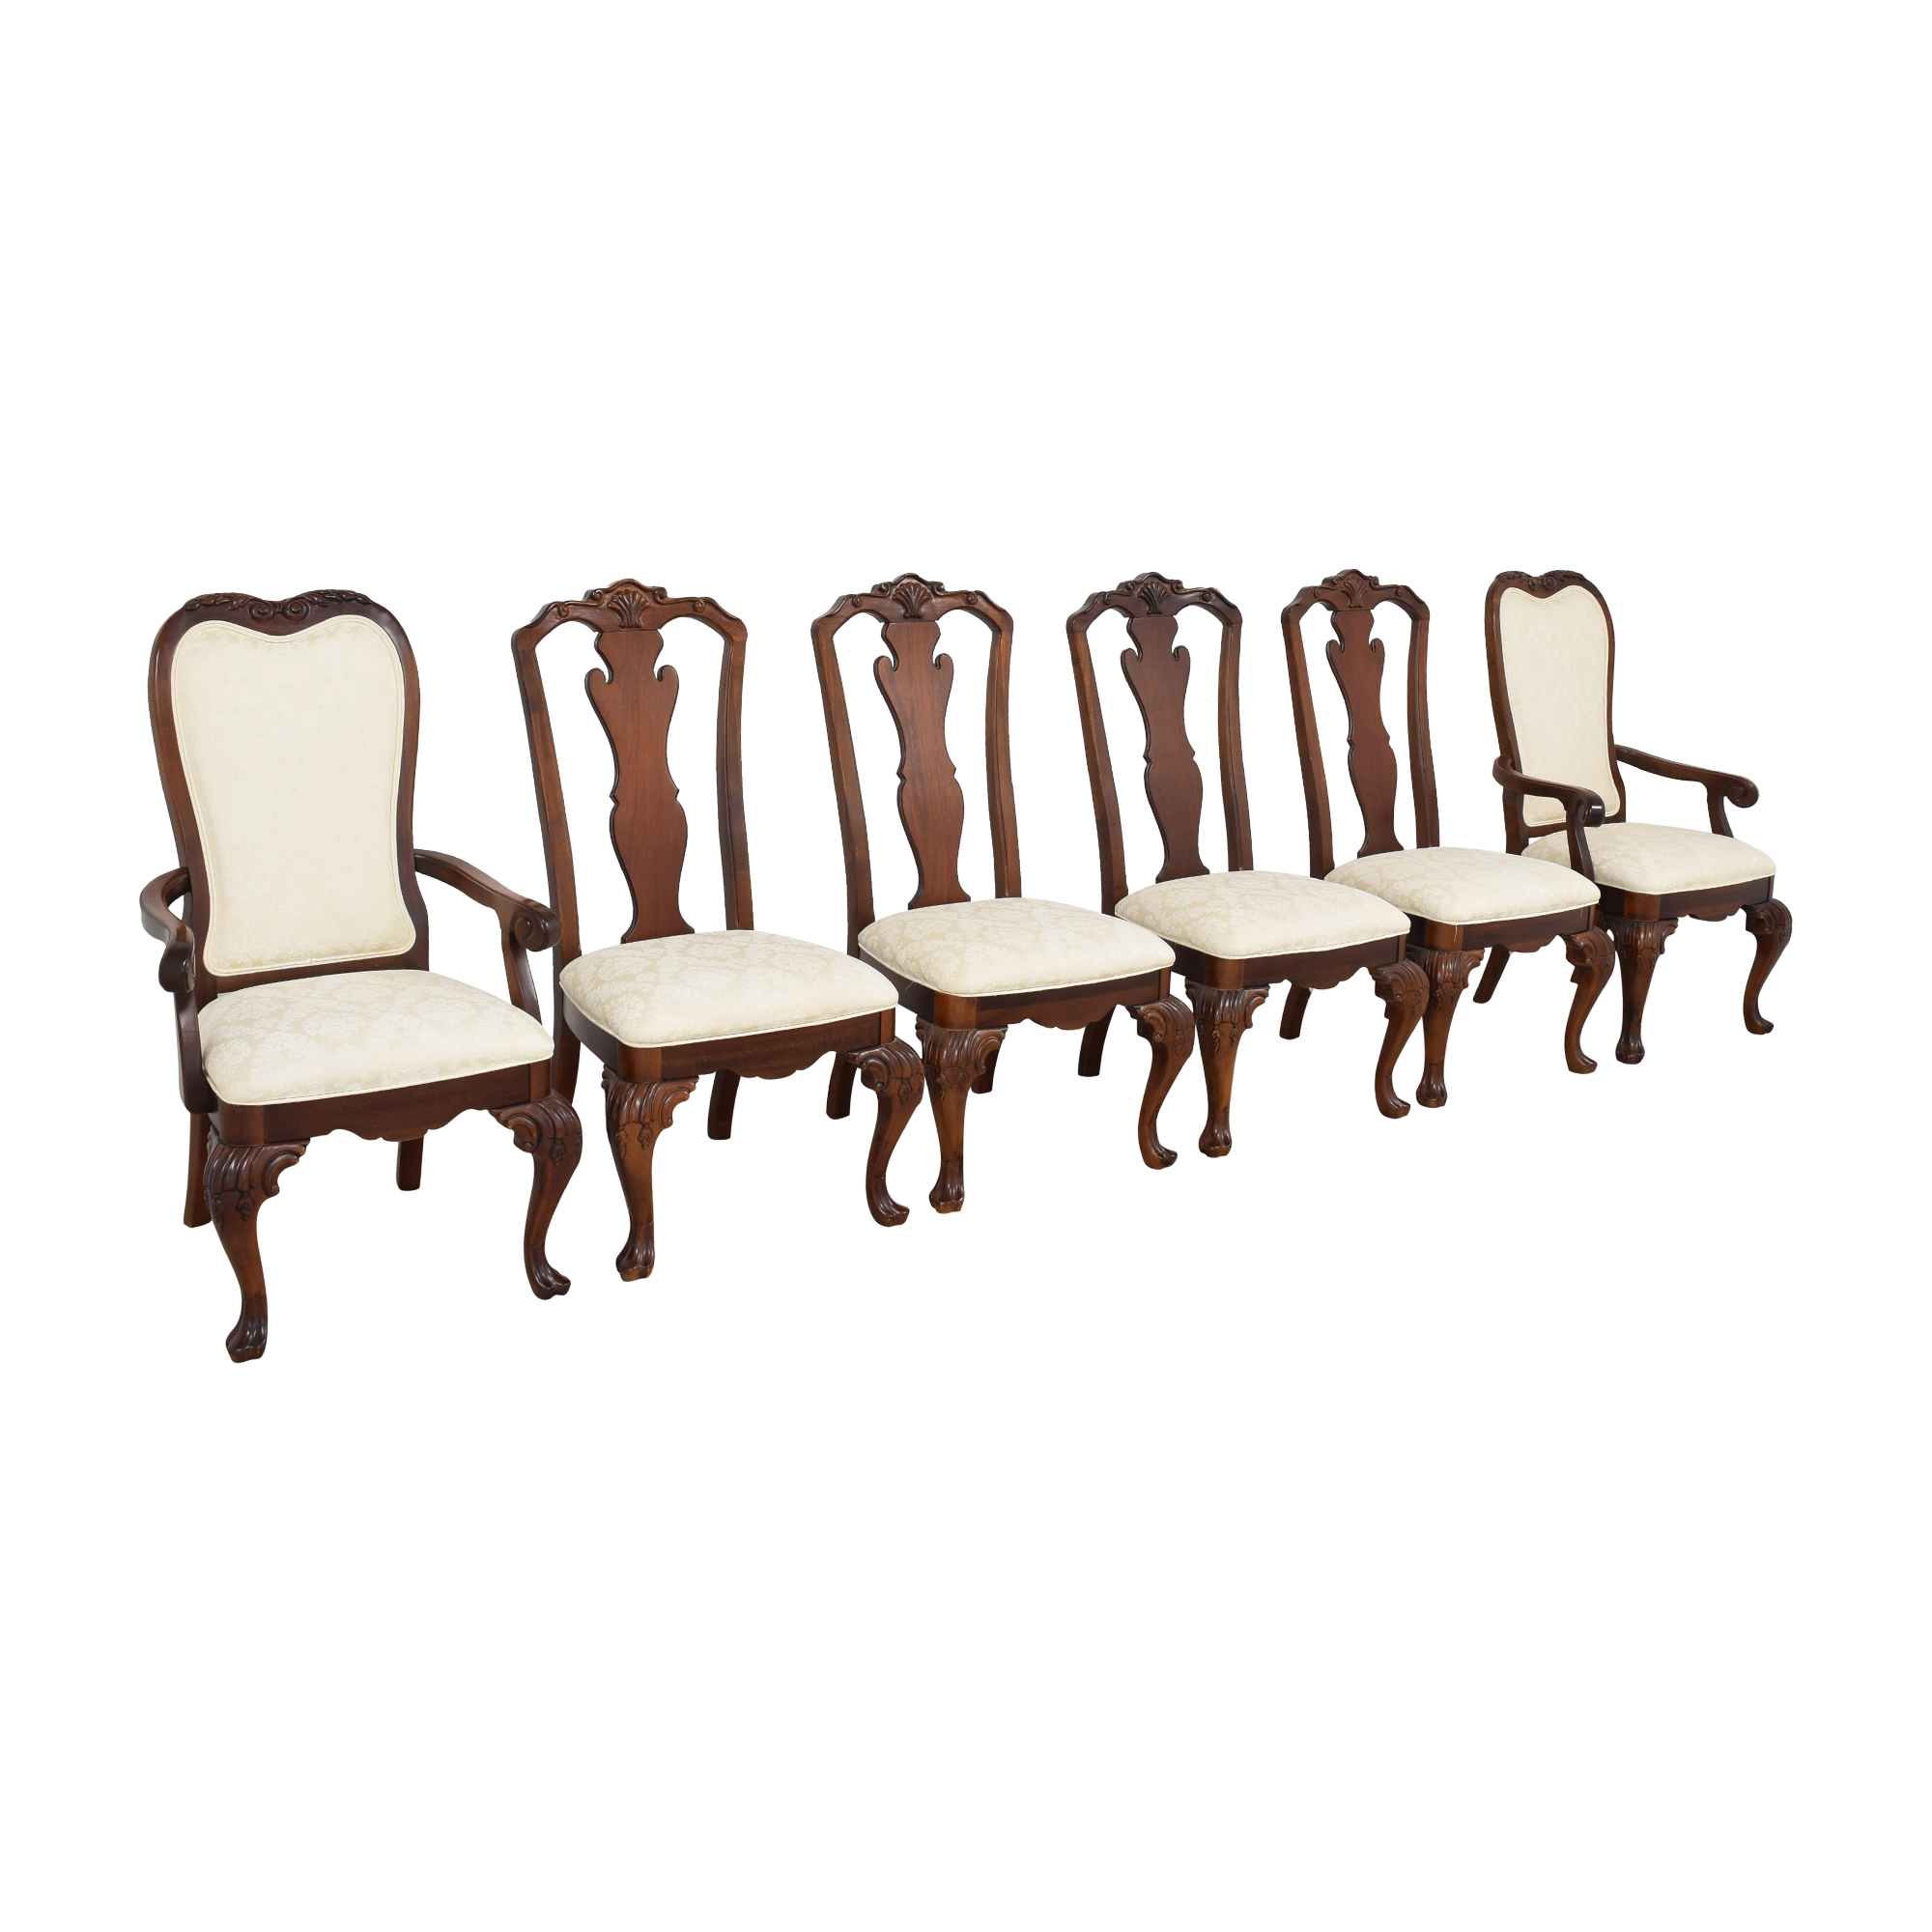 Thomasville Thomasville Upholstered Dining Chairs on sale